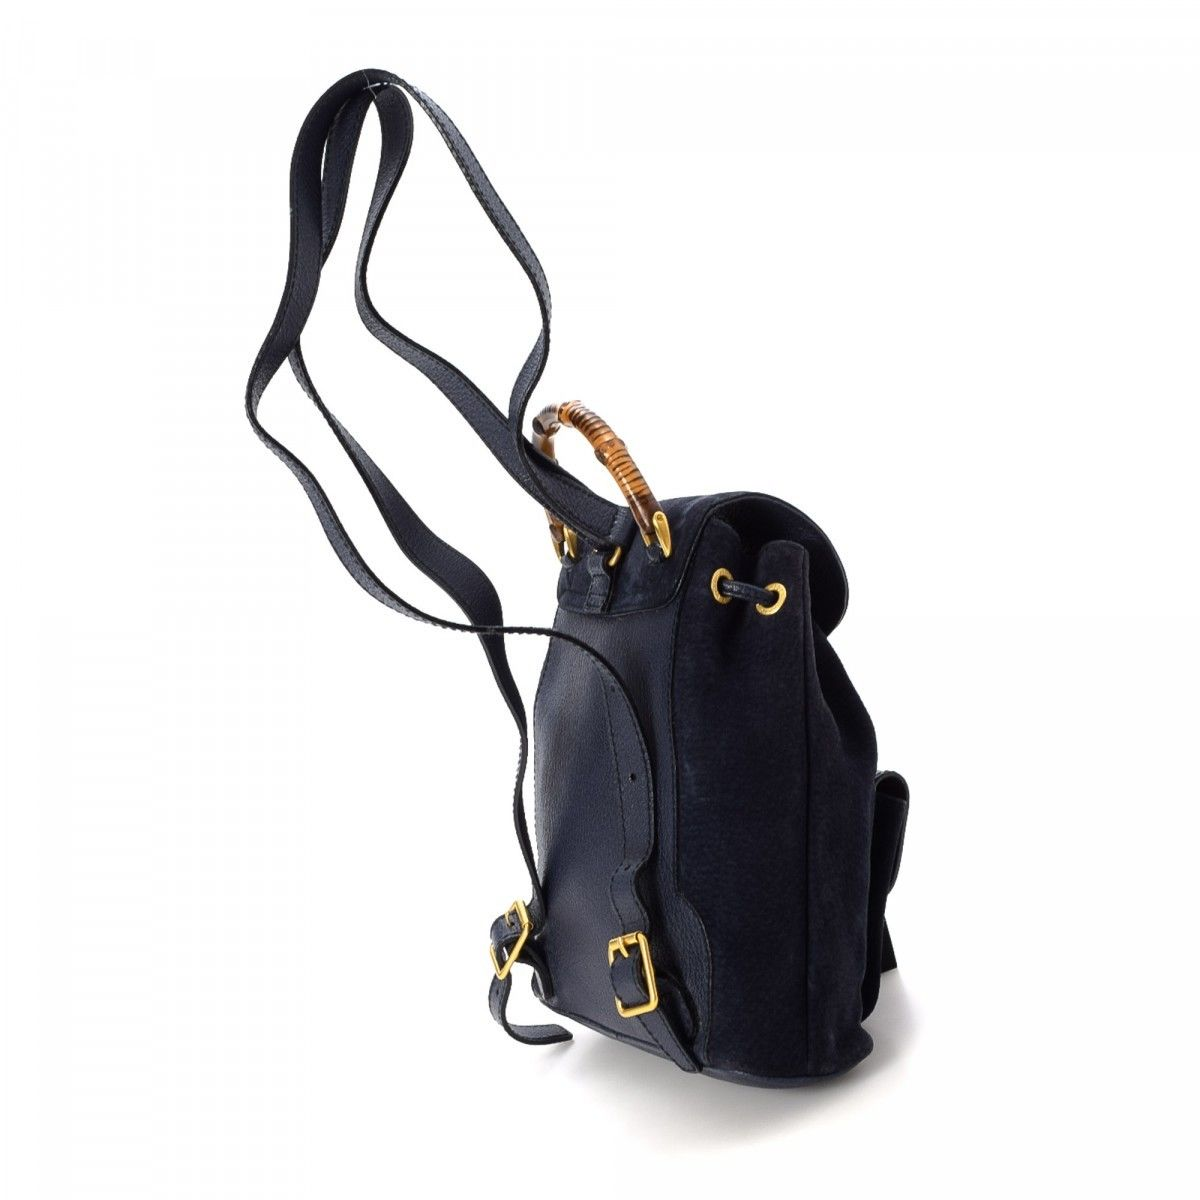 f03a0fdd67f Bamboo Backpack. Free Shipping. LXRandCo guarantees the authenticity of  this vintage Gucci backpack. This practical school bag in beautiful navy is  made ...